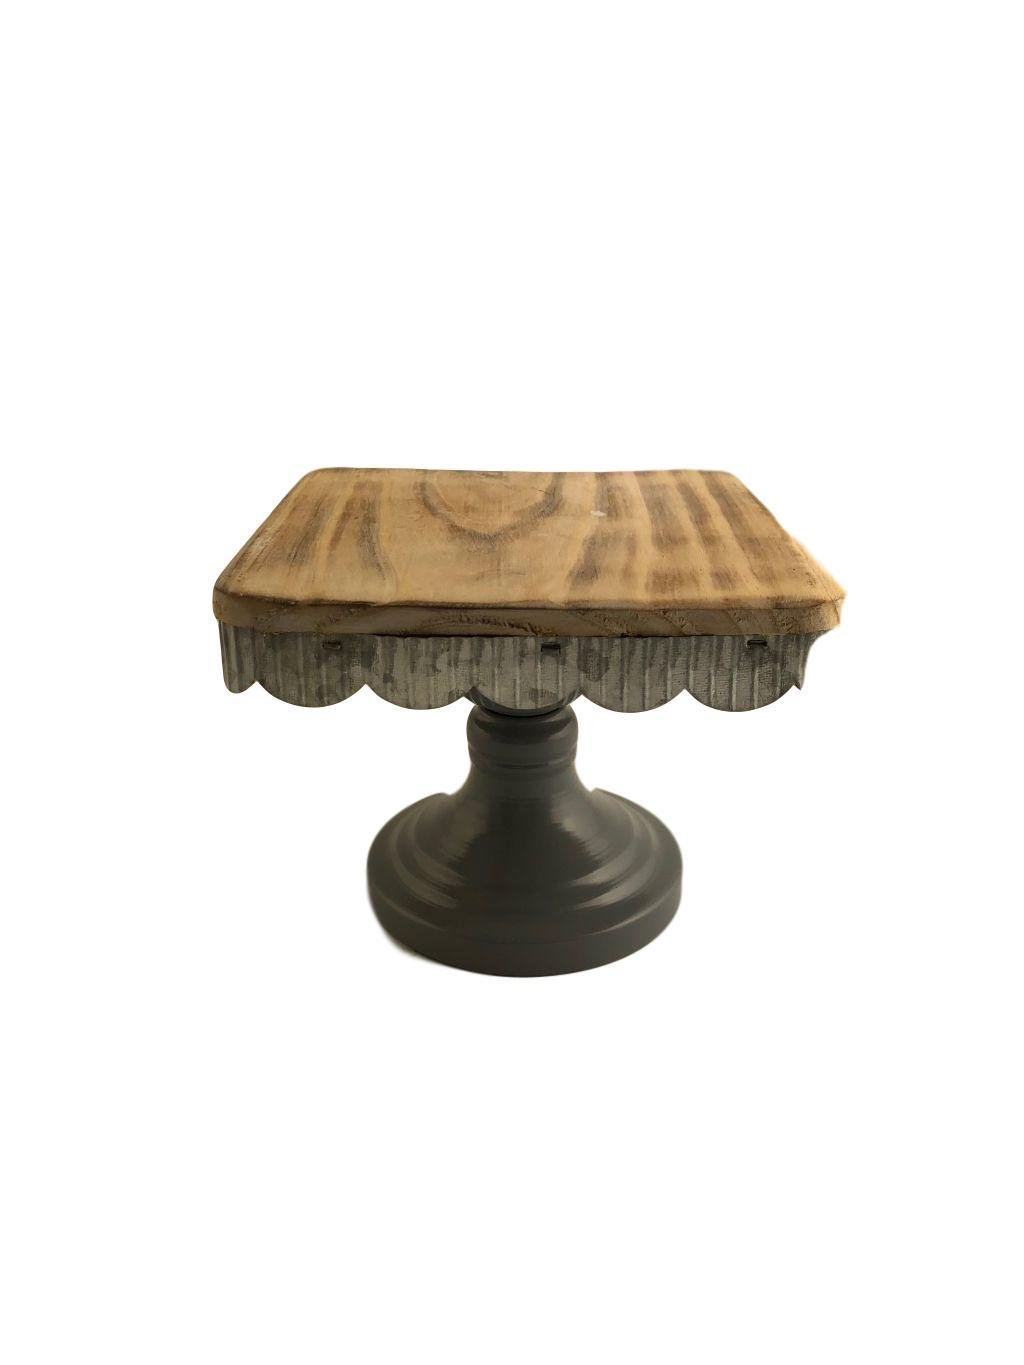 Hampton Cake Pedestal Stand Wood Vintage Wedding Cake Stand Cupcakes Cakes Assorted Size Large Small Medium (Square 7.08X7.08X5.4H, Grey and Wood)